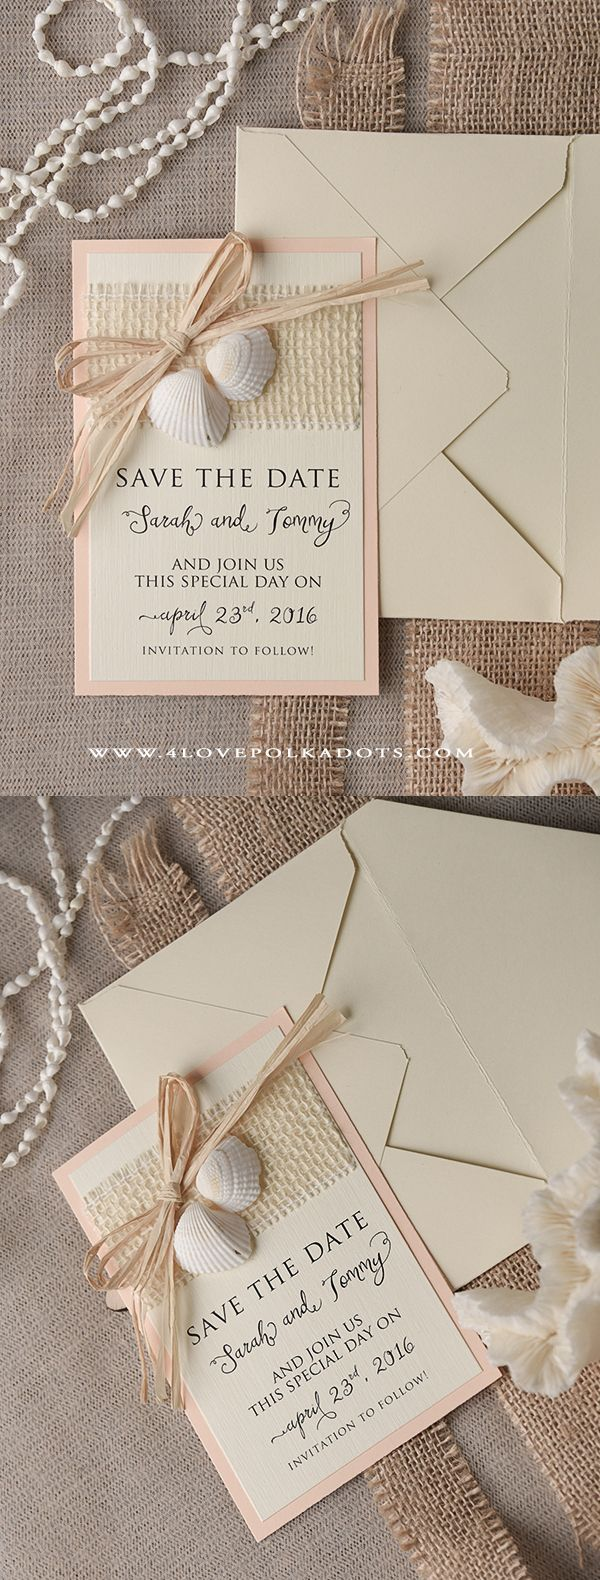 Top 10 Rustic Wedding Invitations To Wow Your Guests Beach